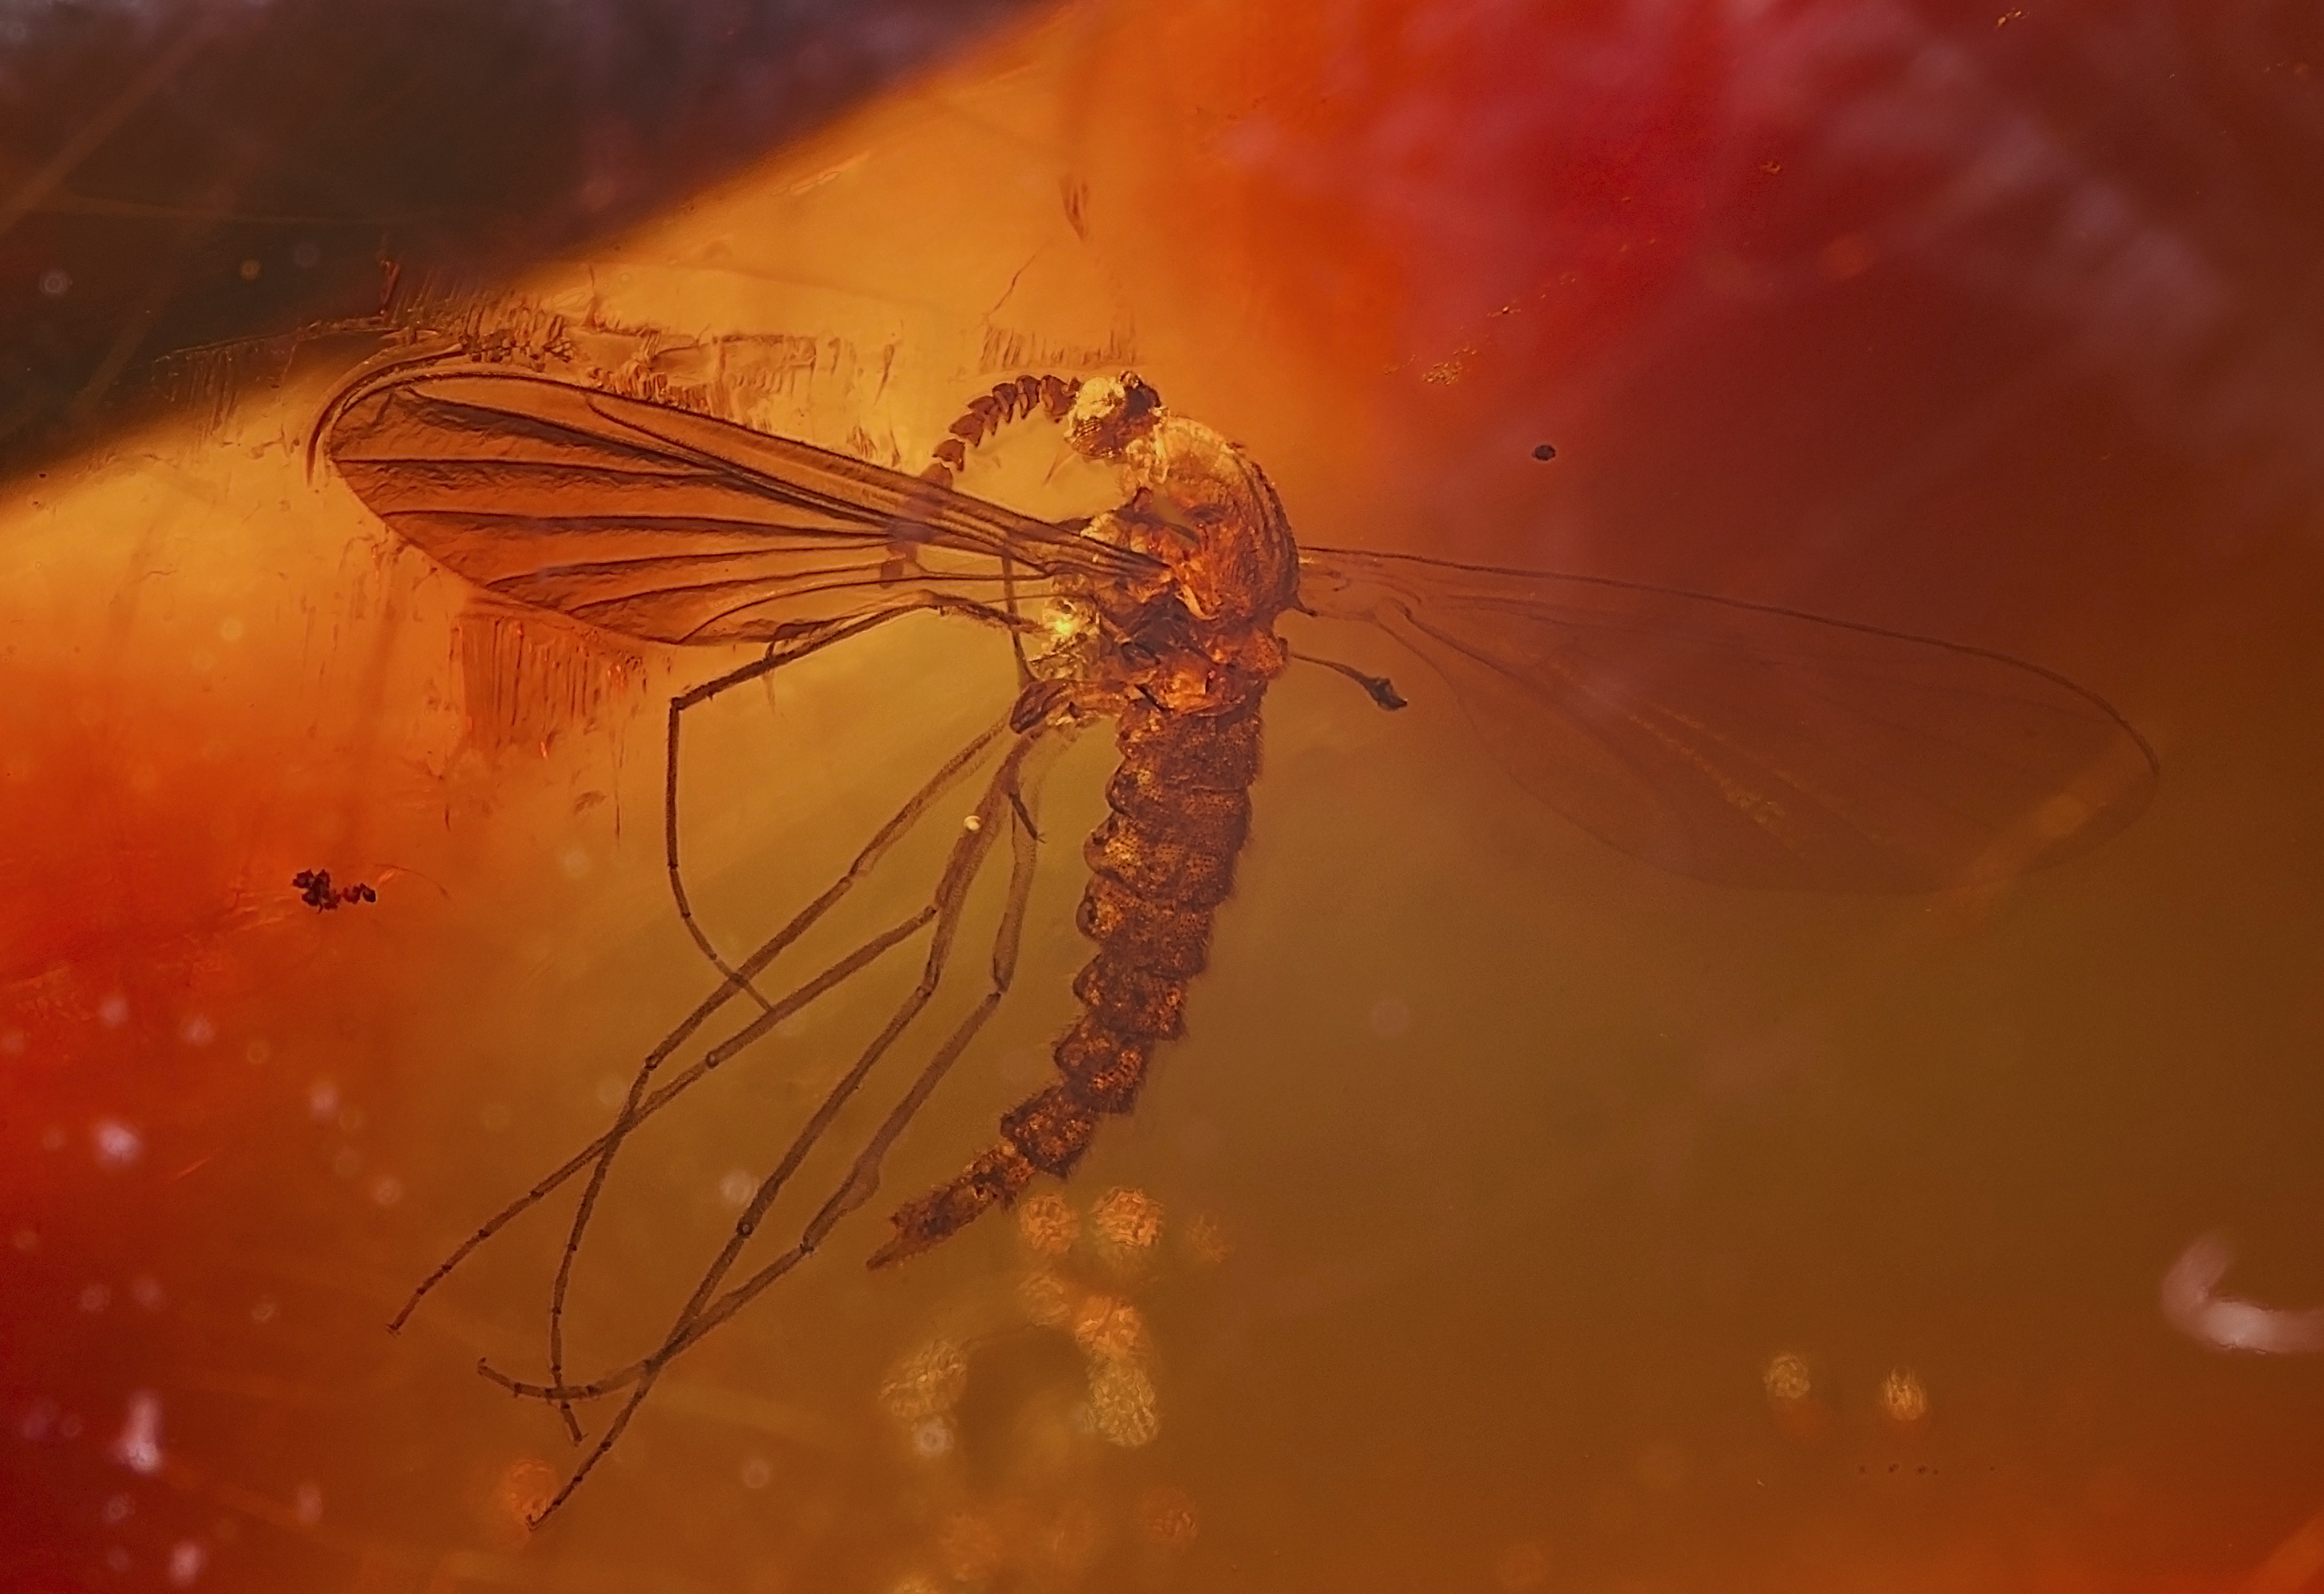 A mosquito in amber